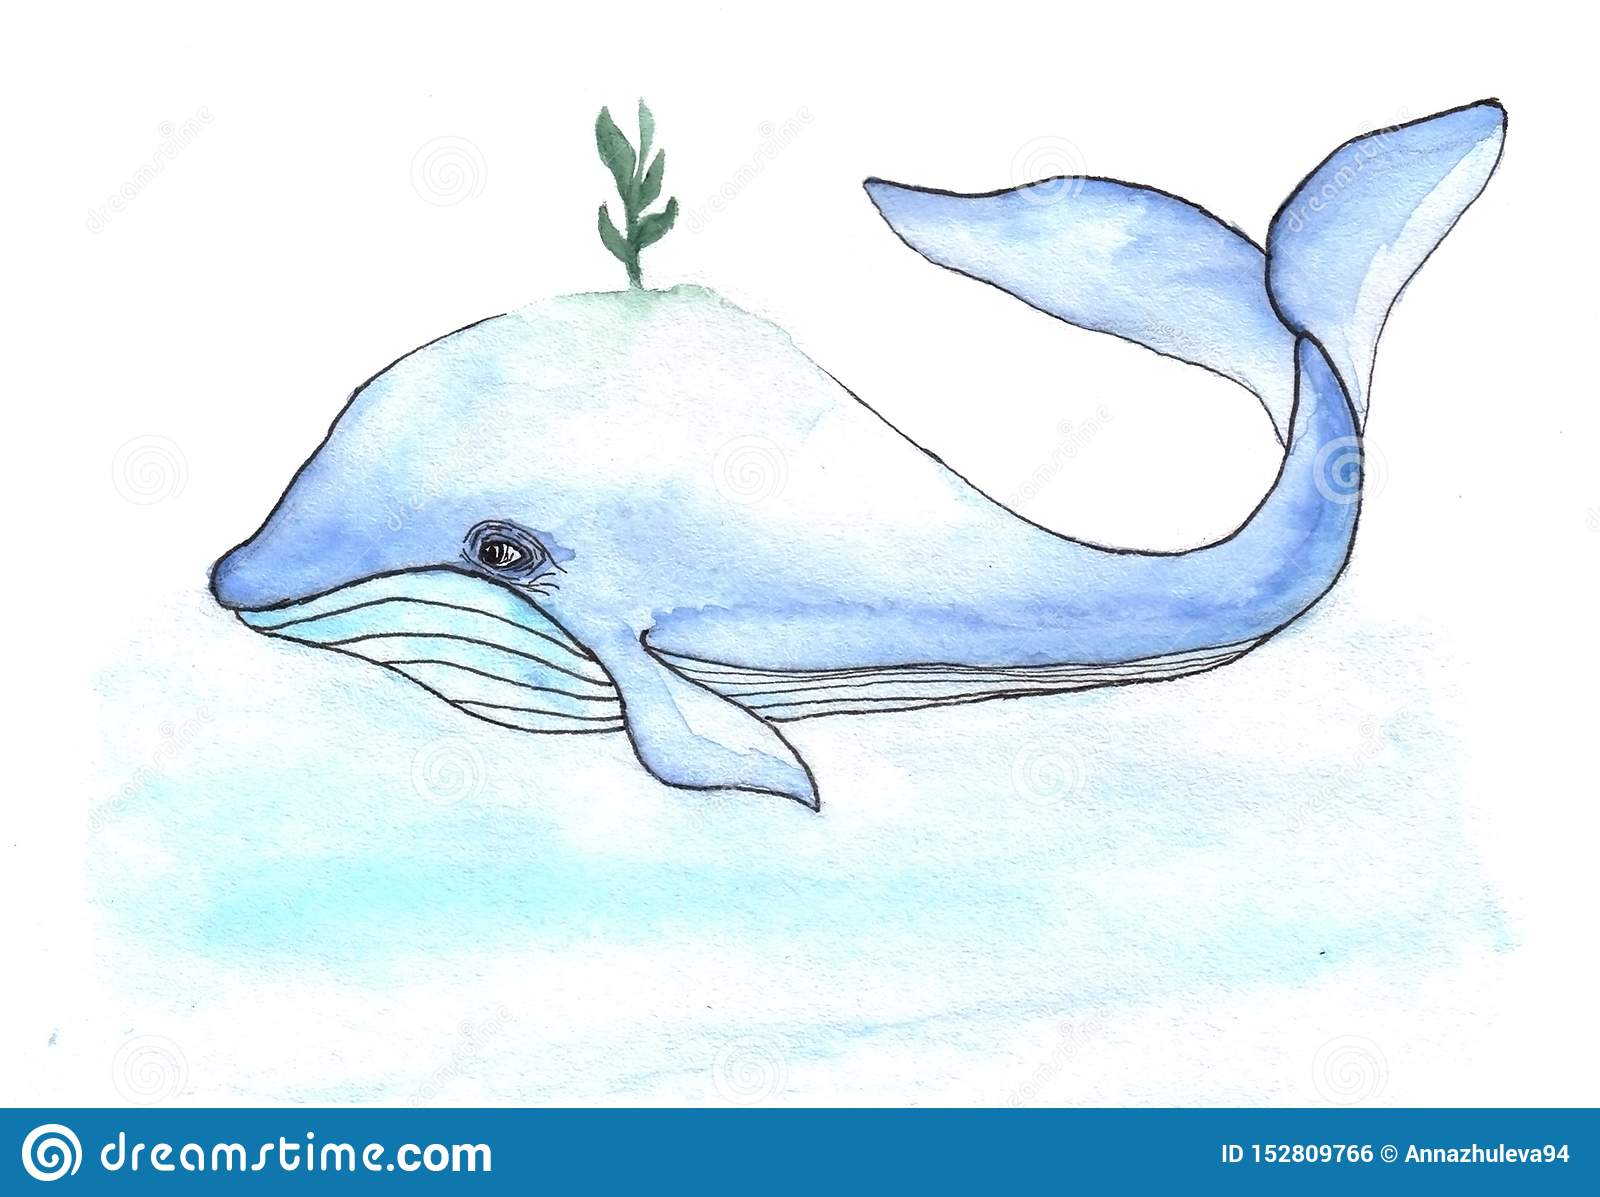 Cartoons watercolors cute whale with small book